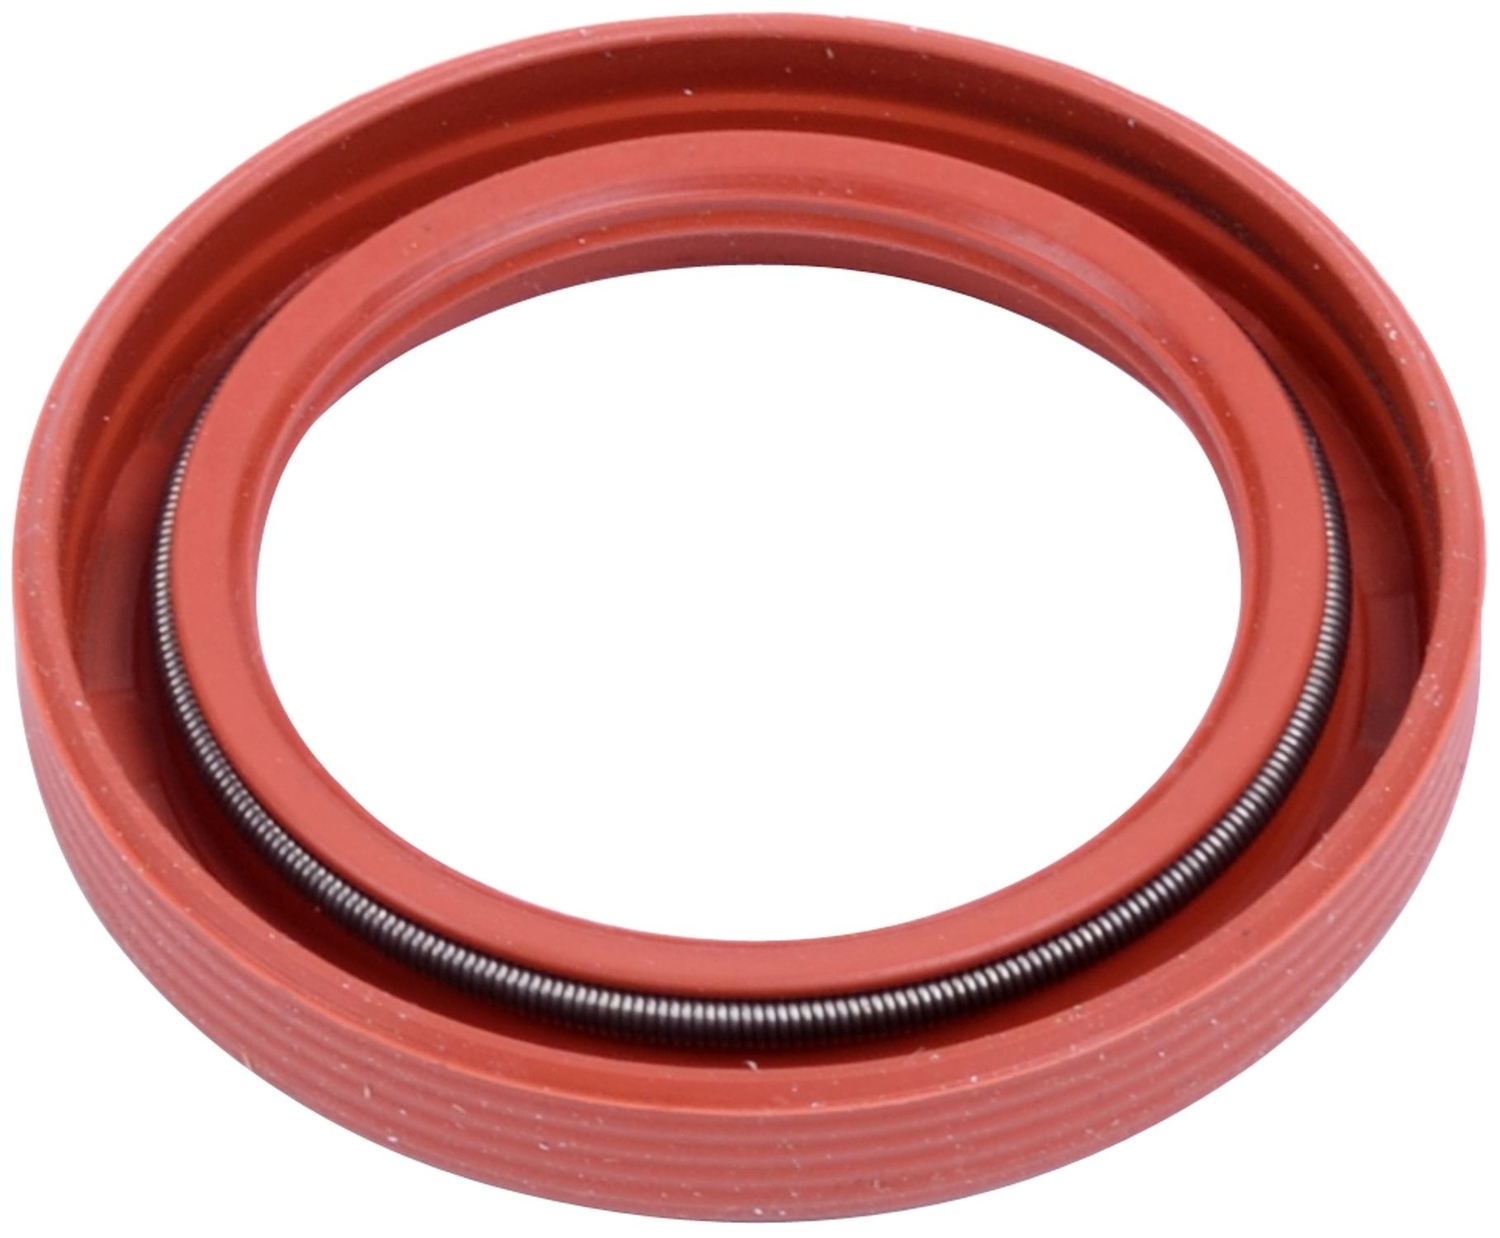 SKF (CHICAGO RAWHIDE) - Engine Timing Cover Seal - SKF 13943